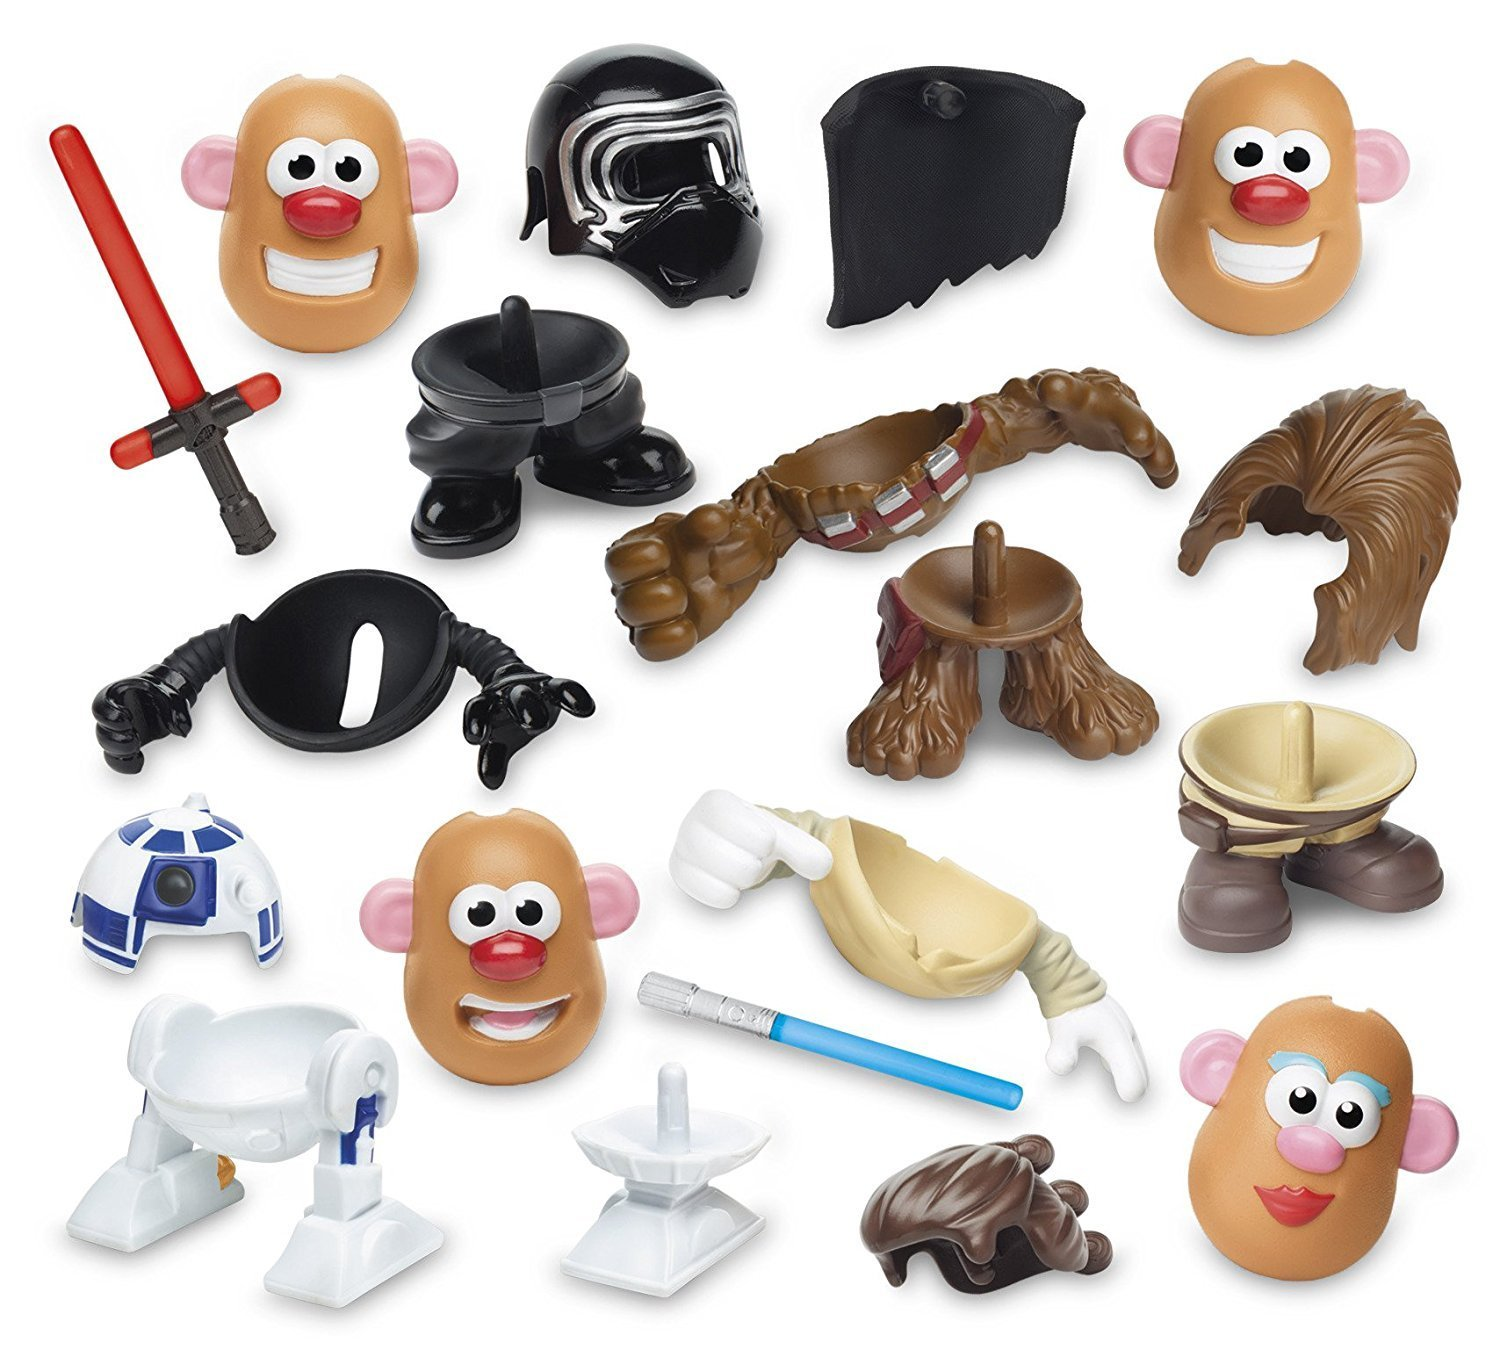 TLJ Mr. Potato Head Mini Multi-Pack 2